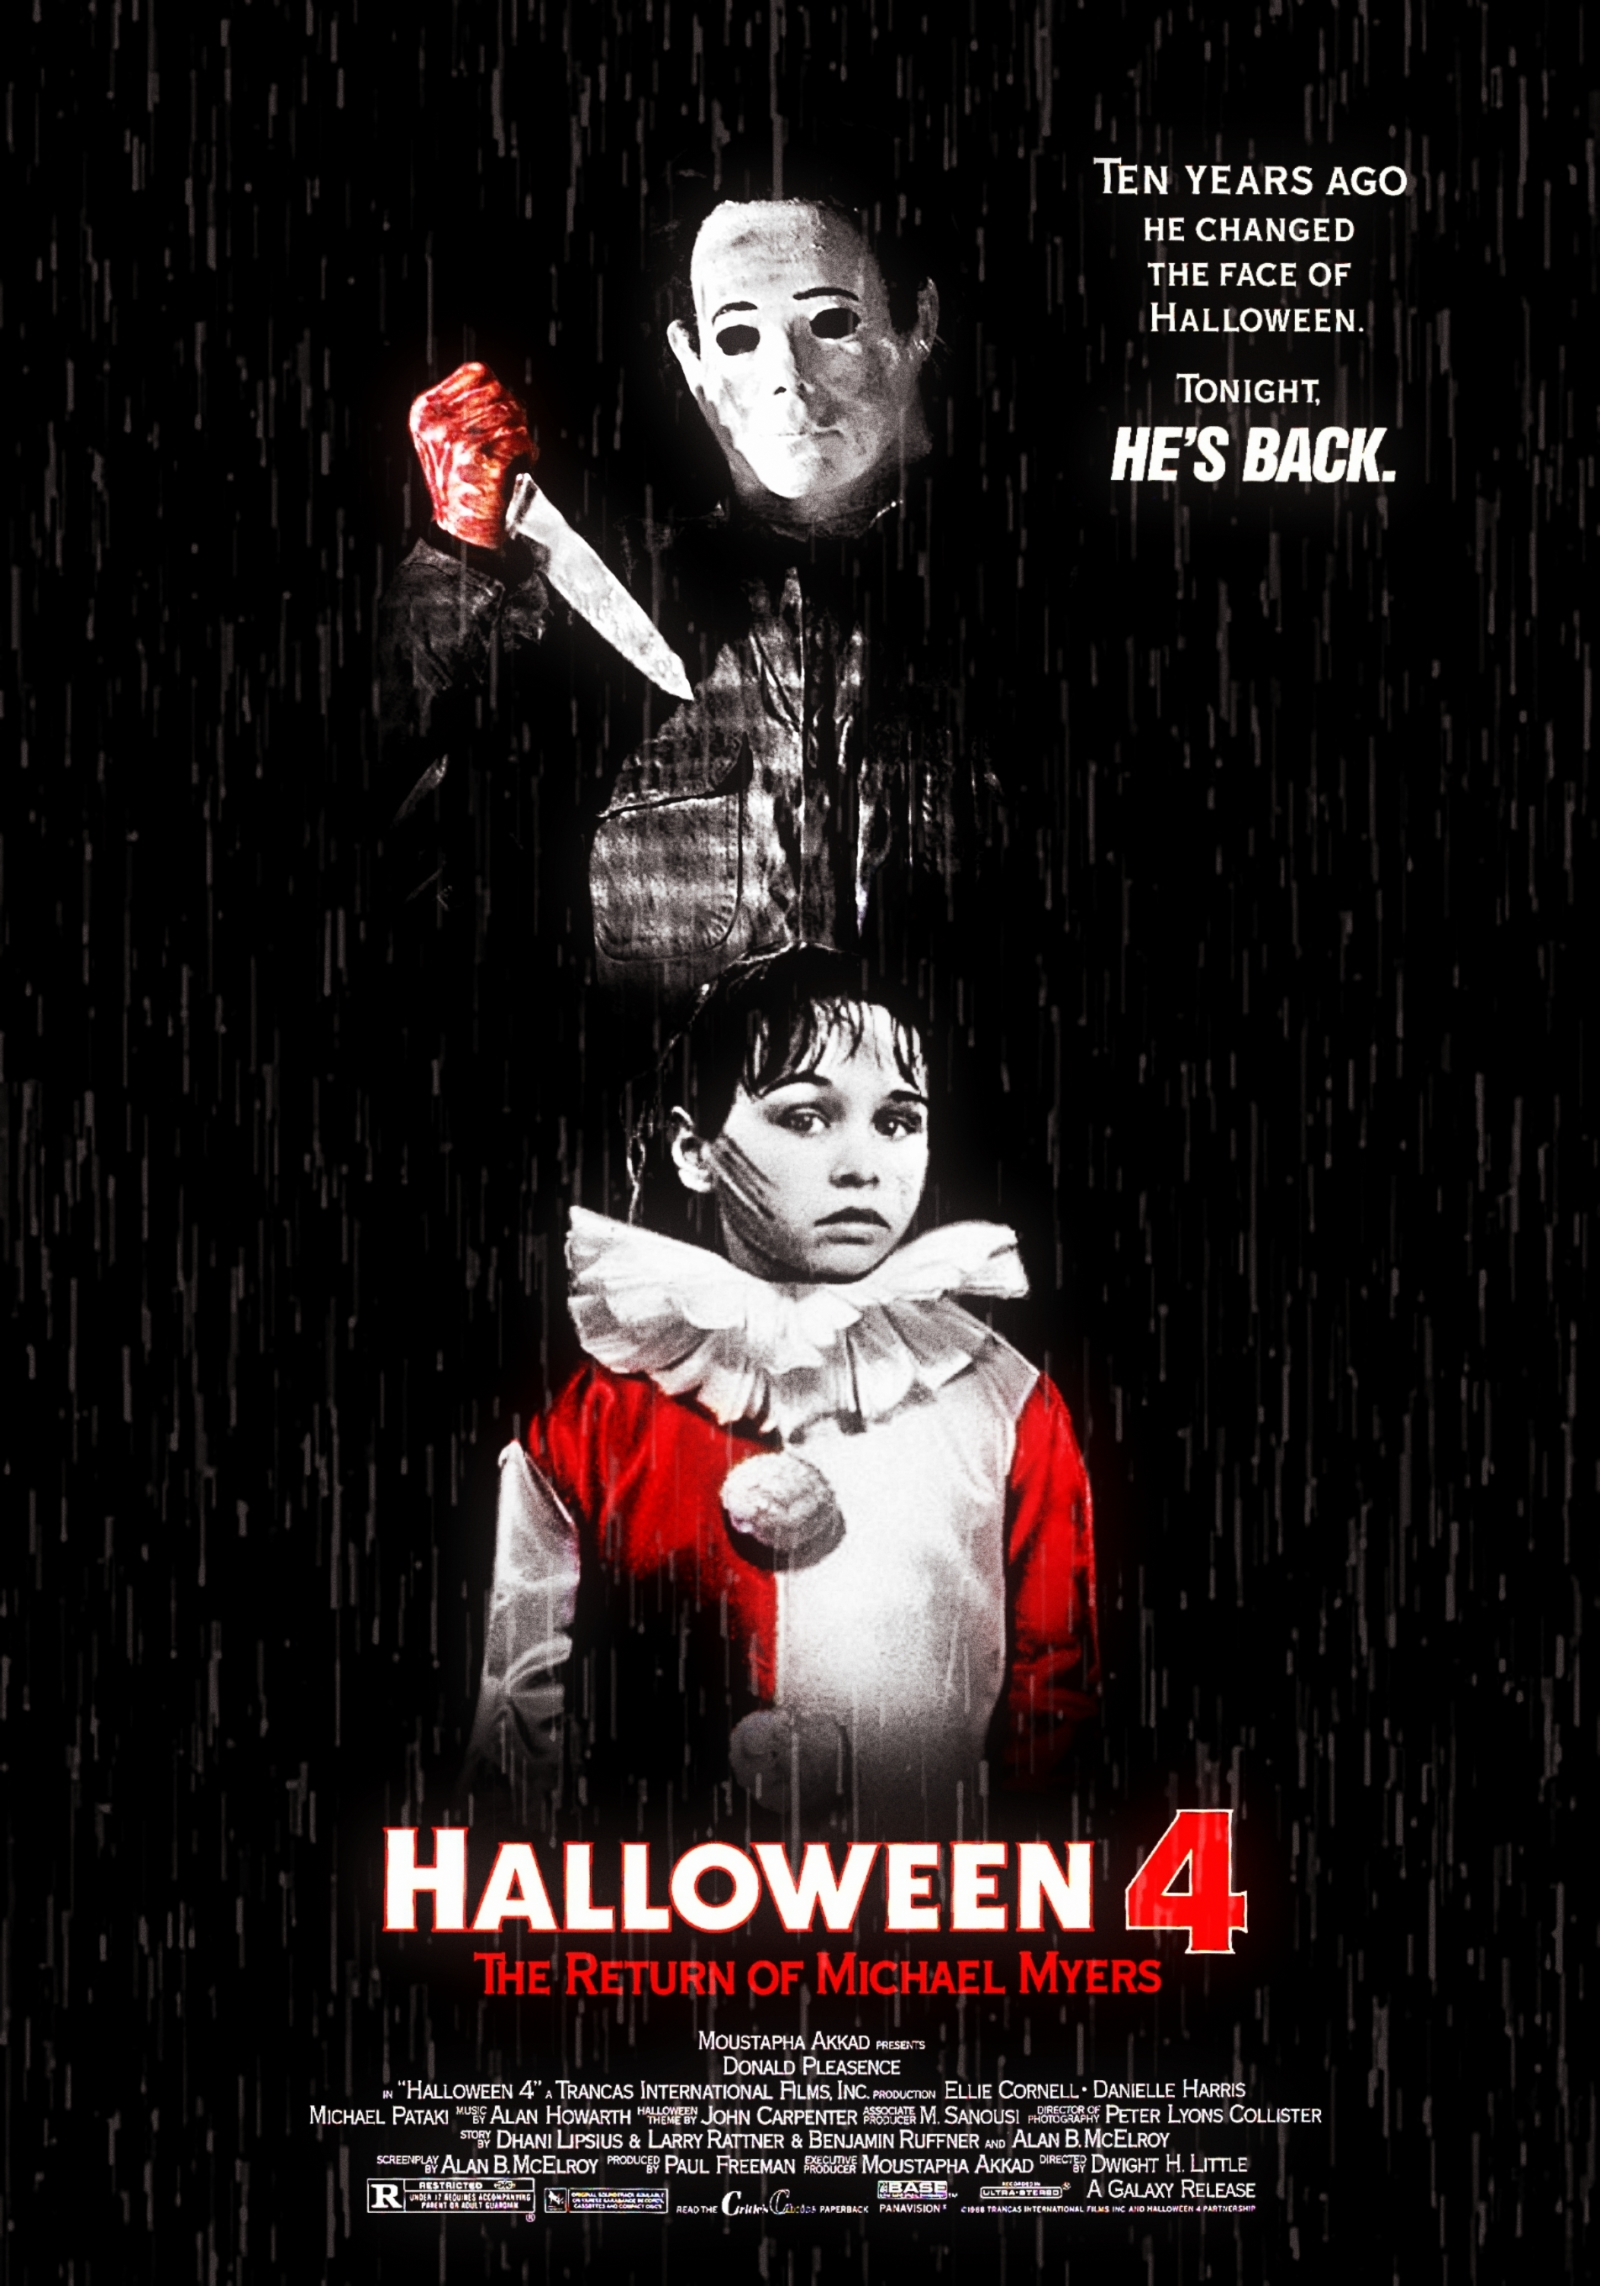 Halloween 4 alternate poster